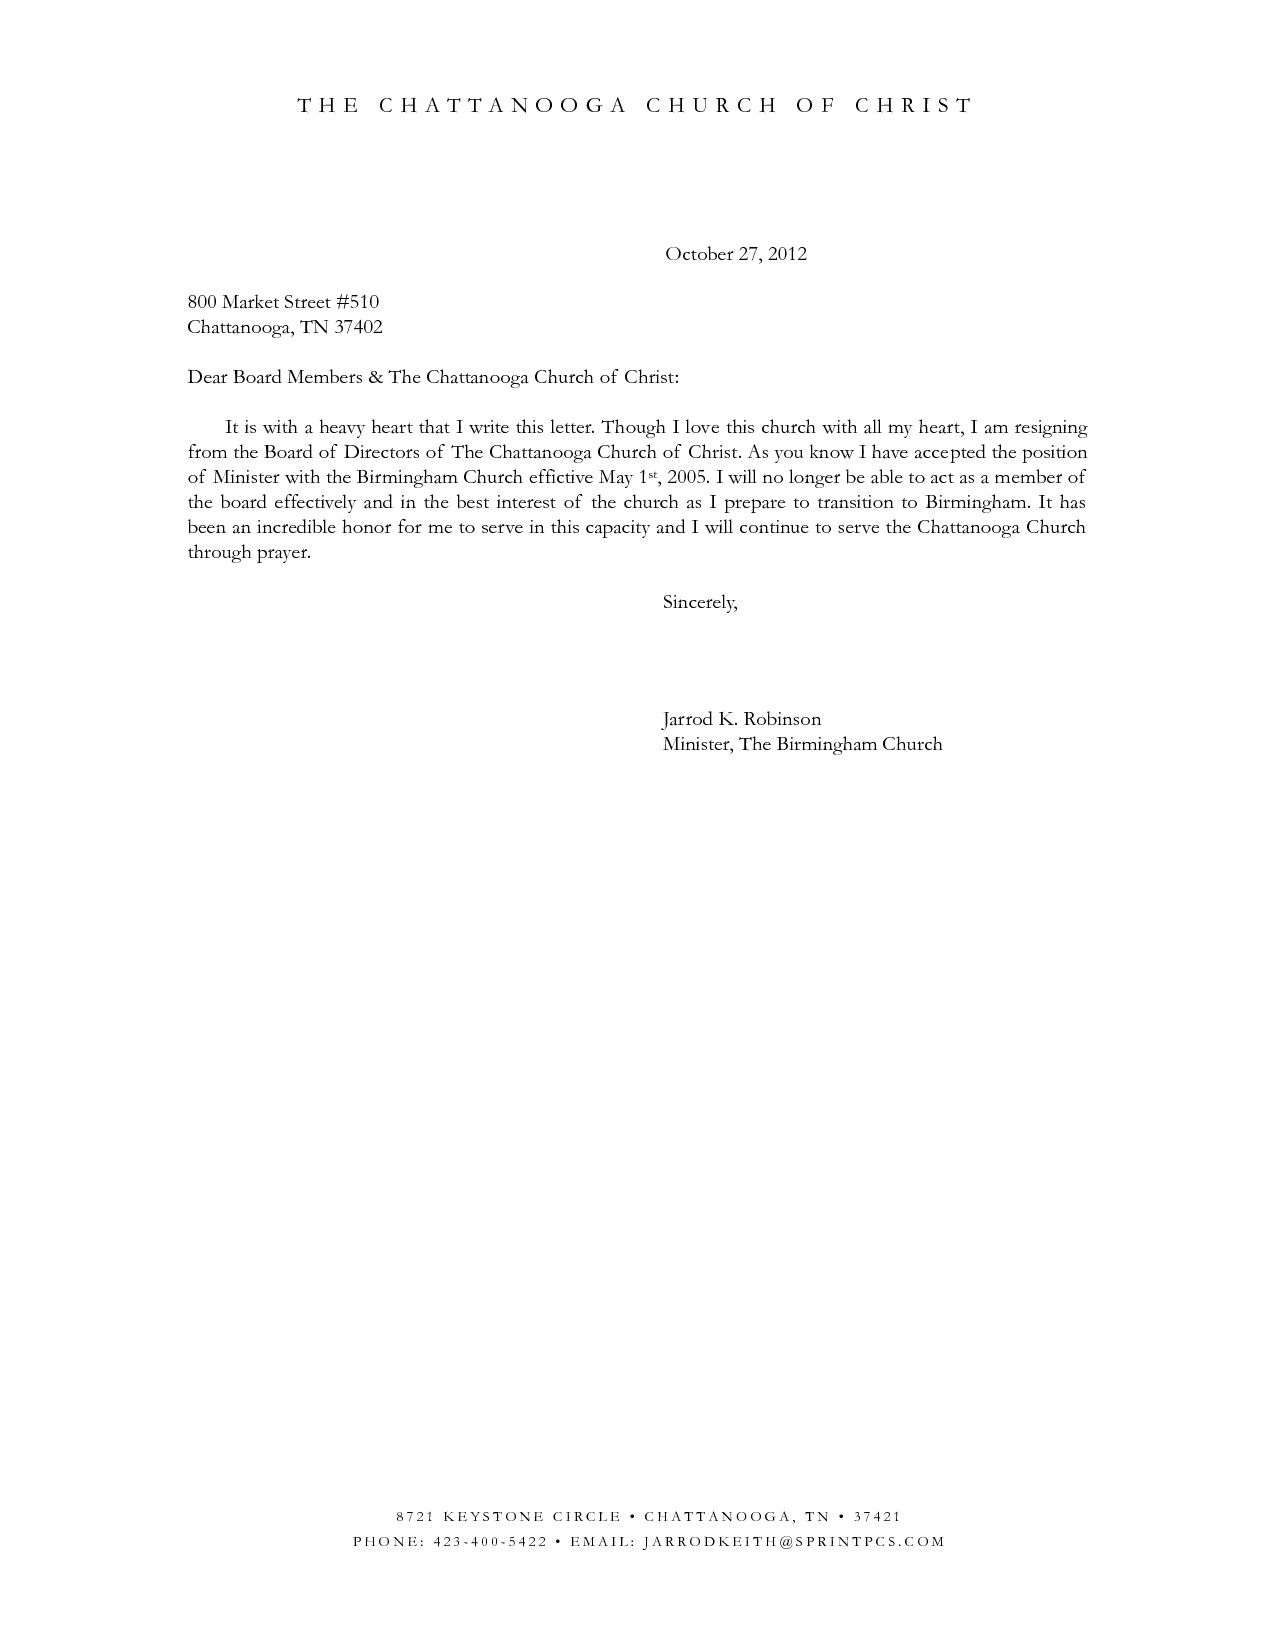 Resignation Letter Template Word Free - Free Resignation Letter Template Word Best Sample Cover Letter